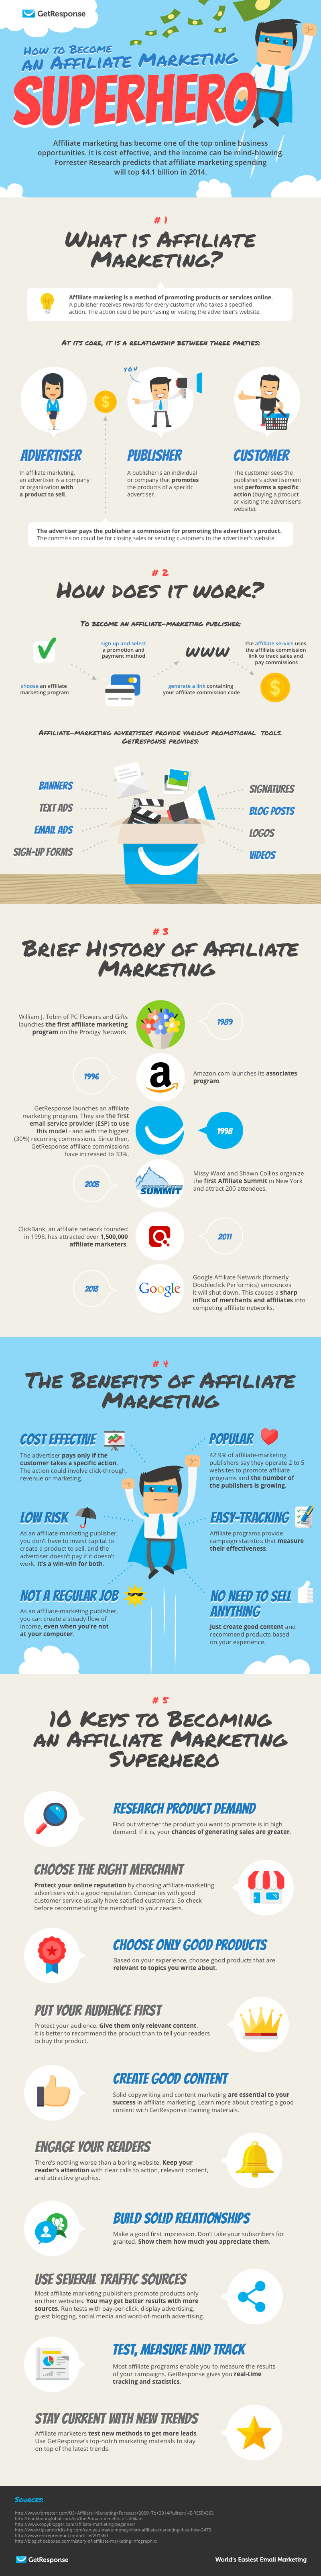 How to Become an Affiliate Marketing Superhero